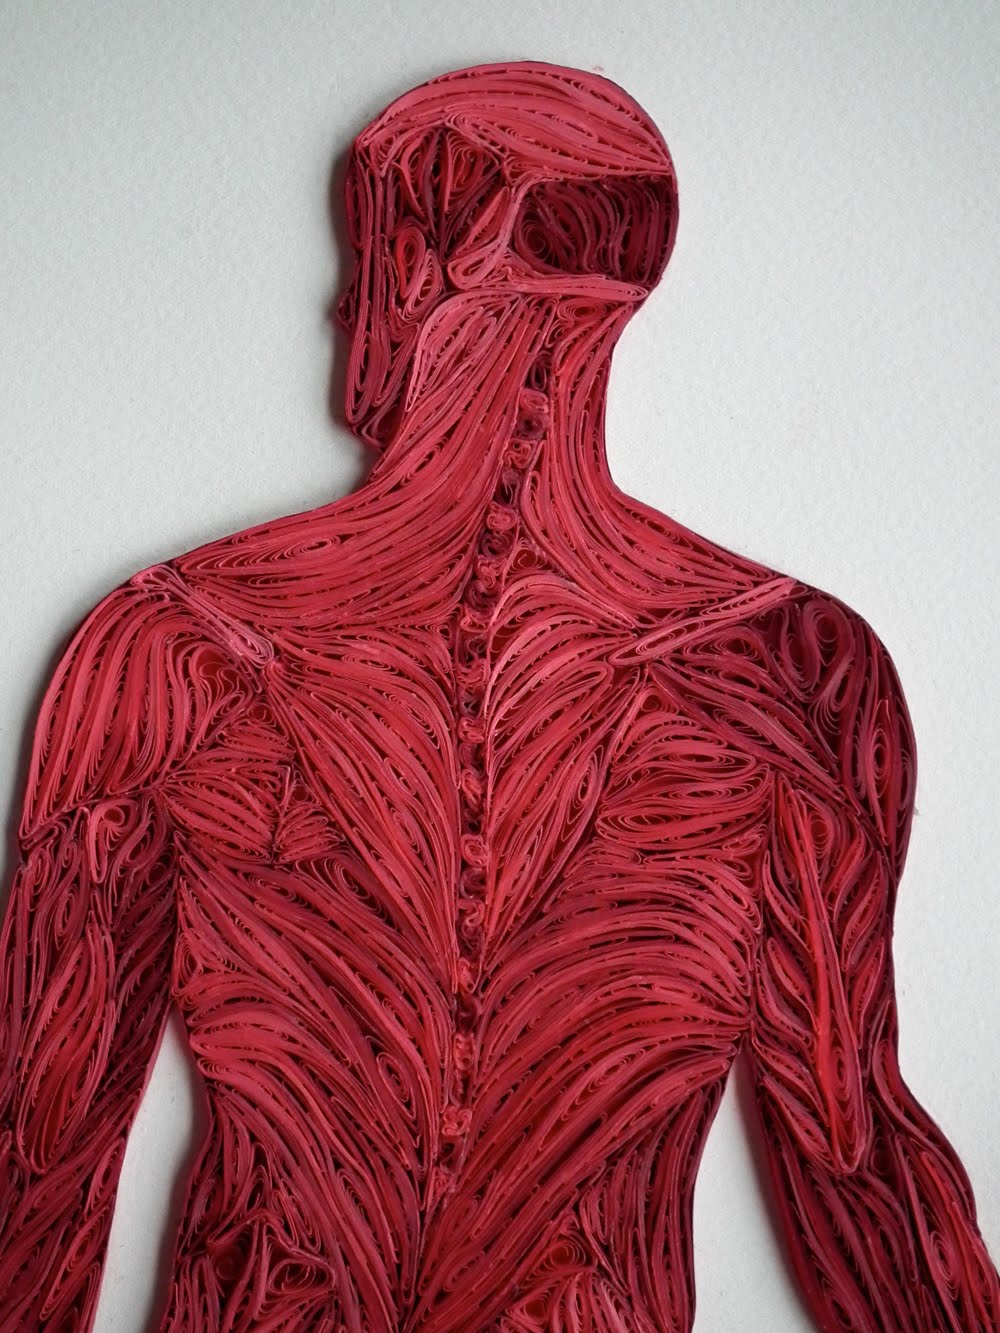 Yakawonis: Quilled Full Figure Muscle Structure